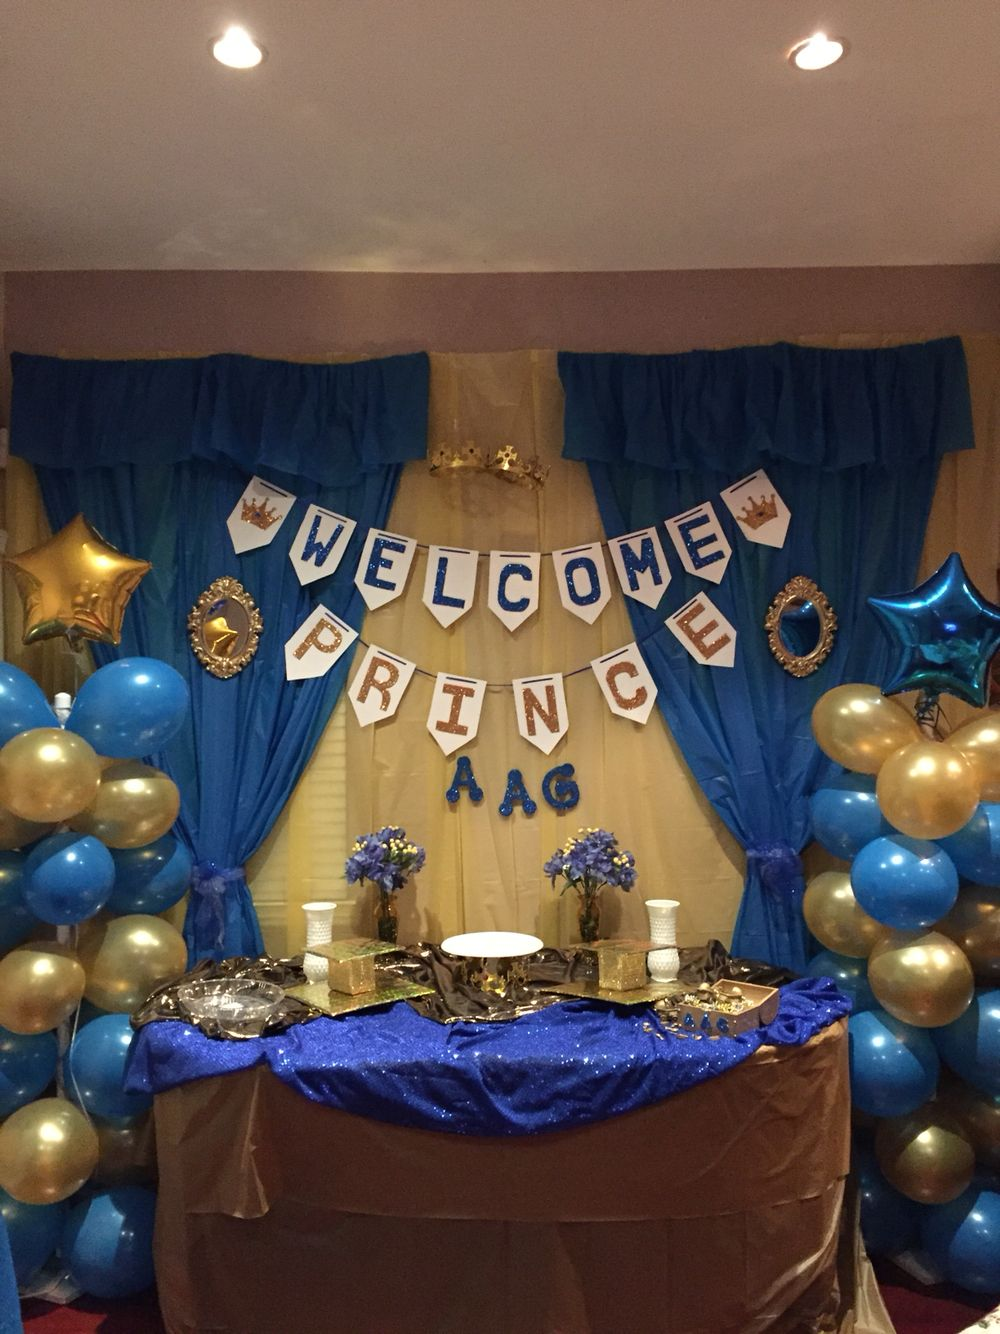 A Royal Blue And Gold Baby Shower Cake Table Decorations For A Gold Baby Shower Decorations Baby Shower Decorations For Boys Cake Table Decorations Baby Shower